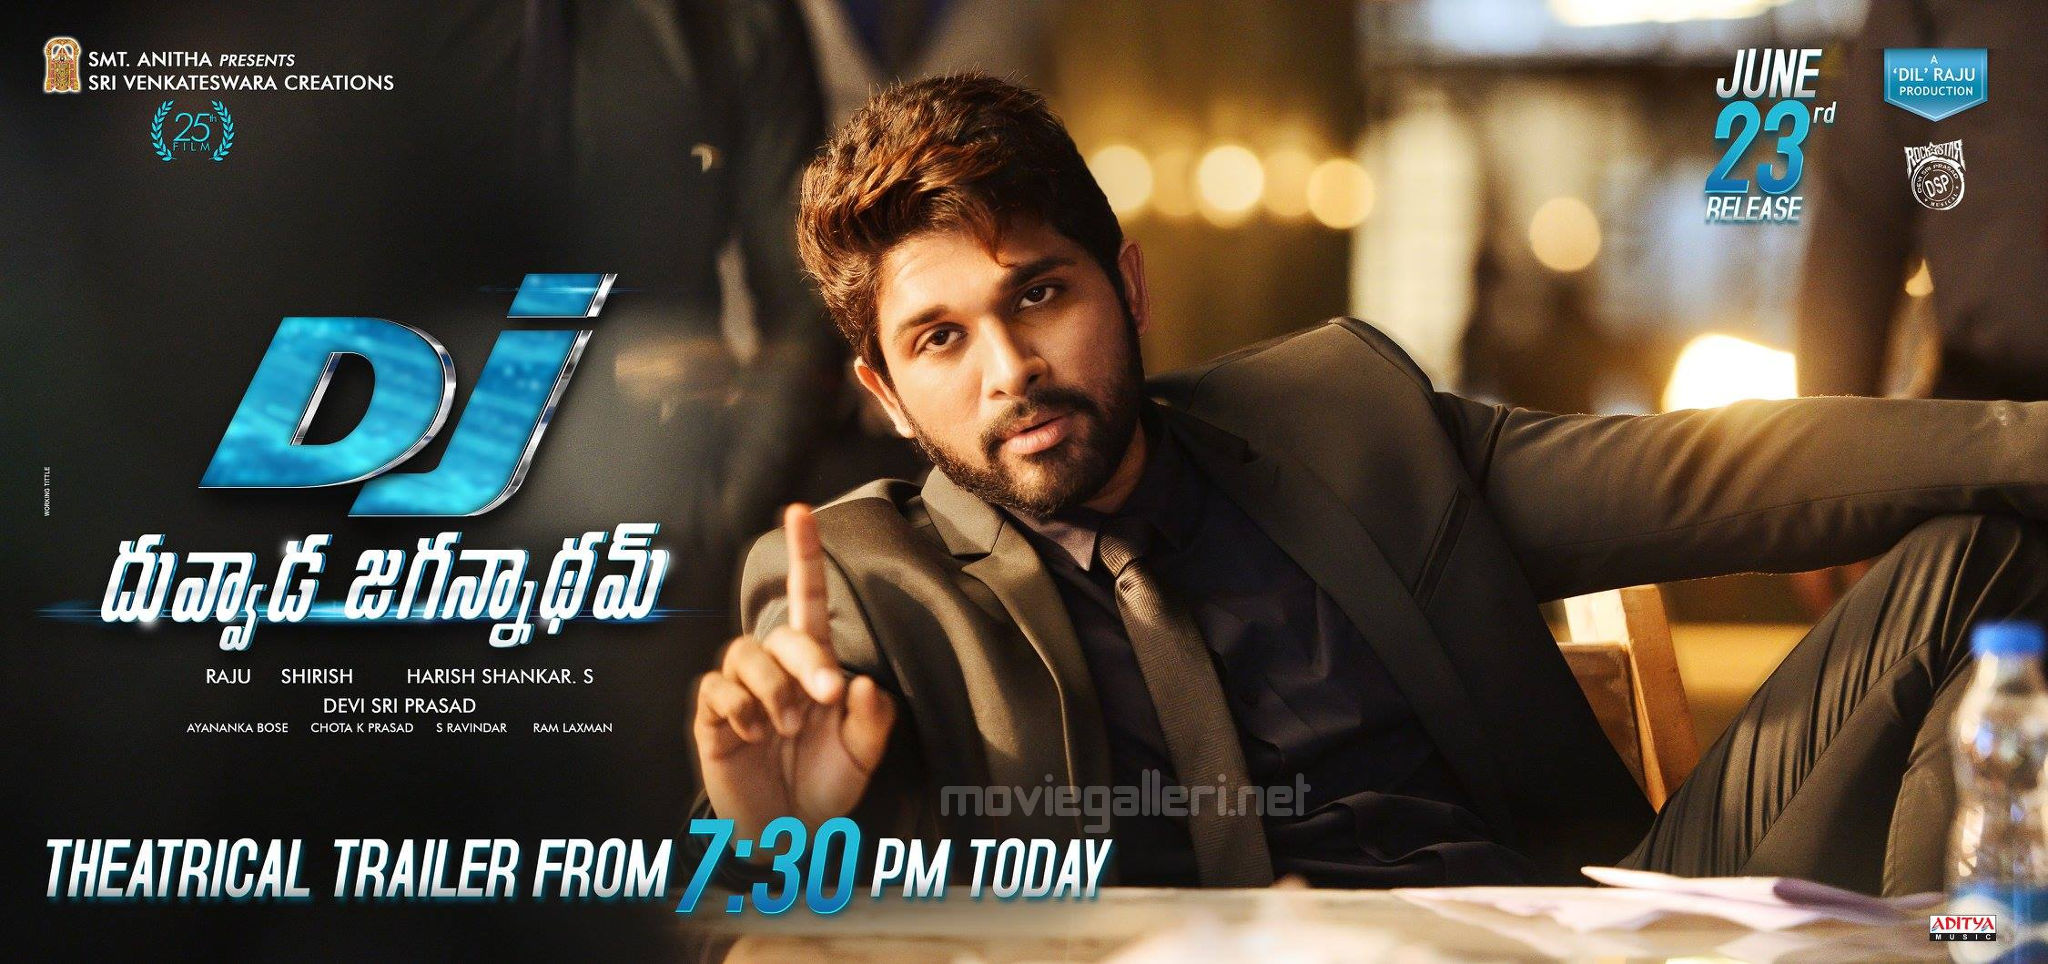 Allu Arjun's DJ Duvvada Jagannadham Movie Theatrical Trailer Release Today June 5 Wallpaper